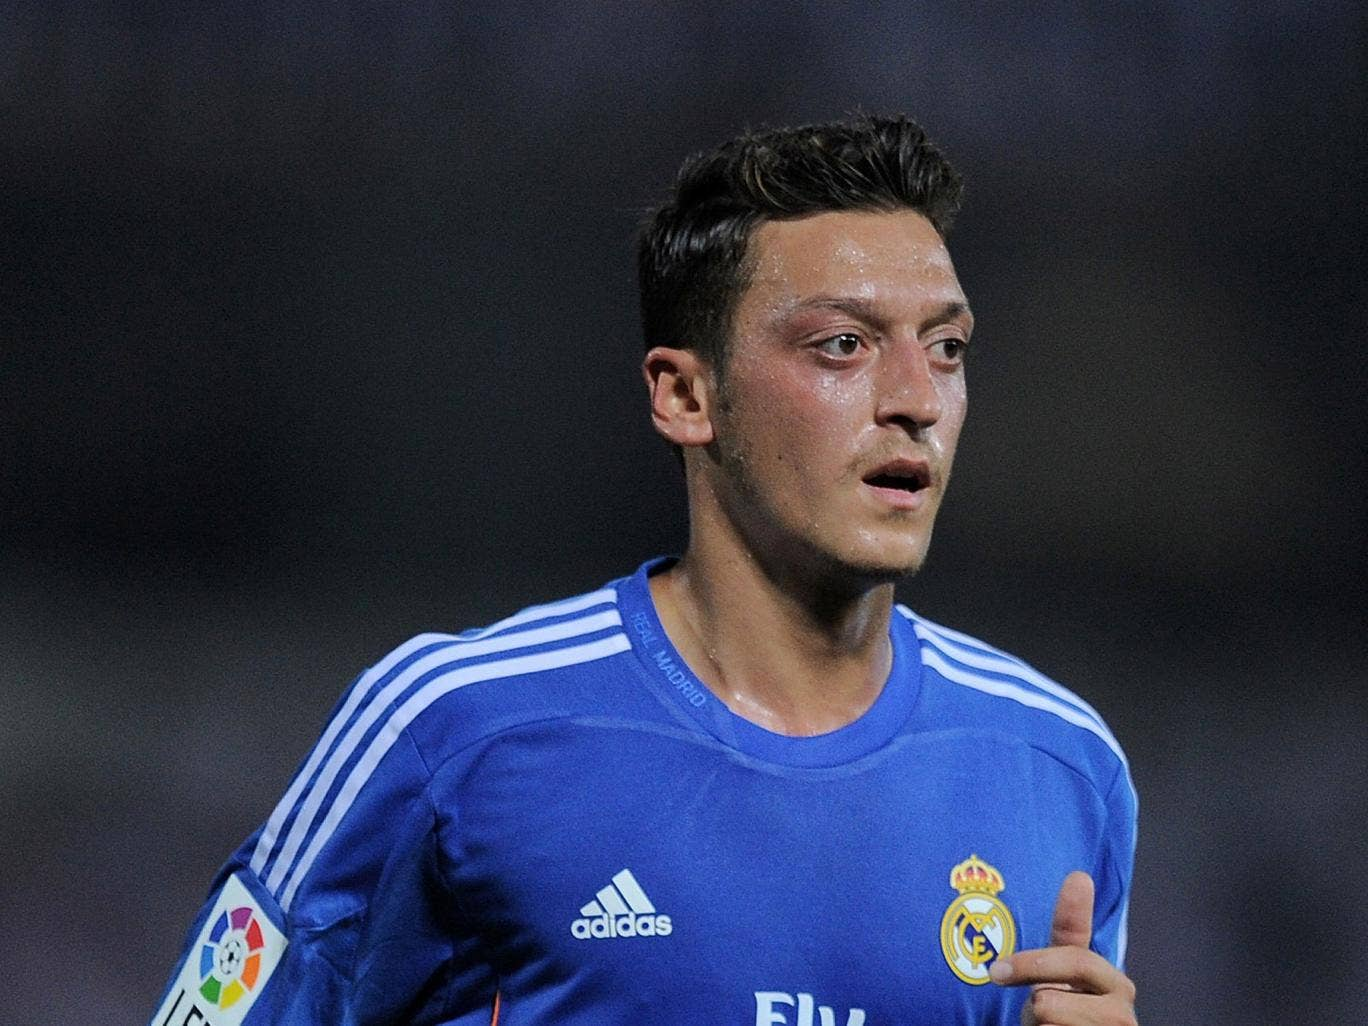 Mesut Ozil says he has no intention of leaving Real Madrid